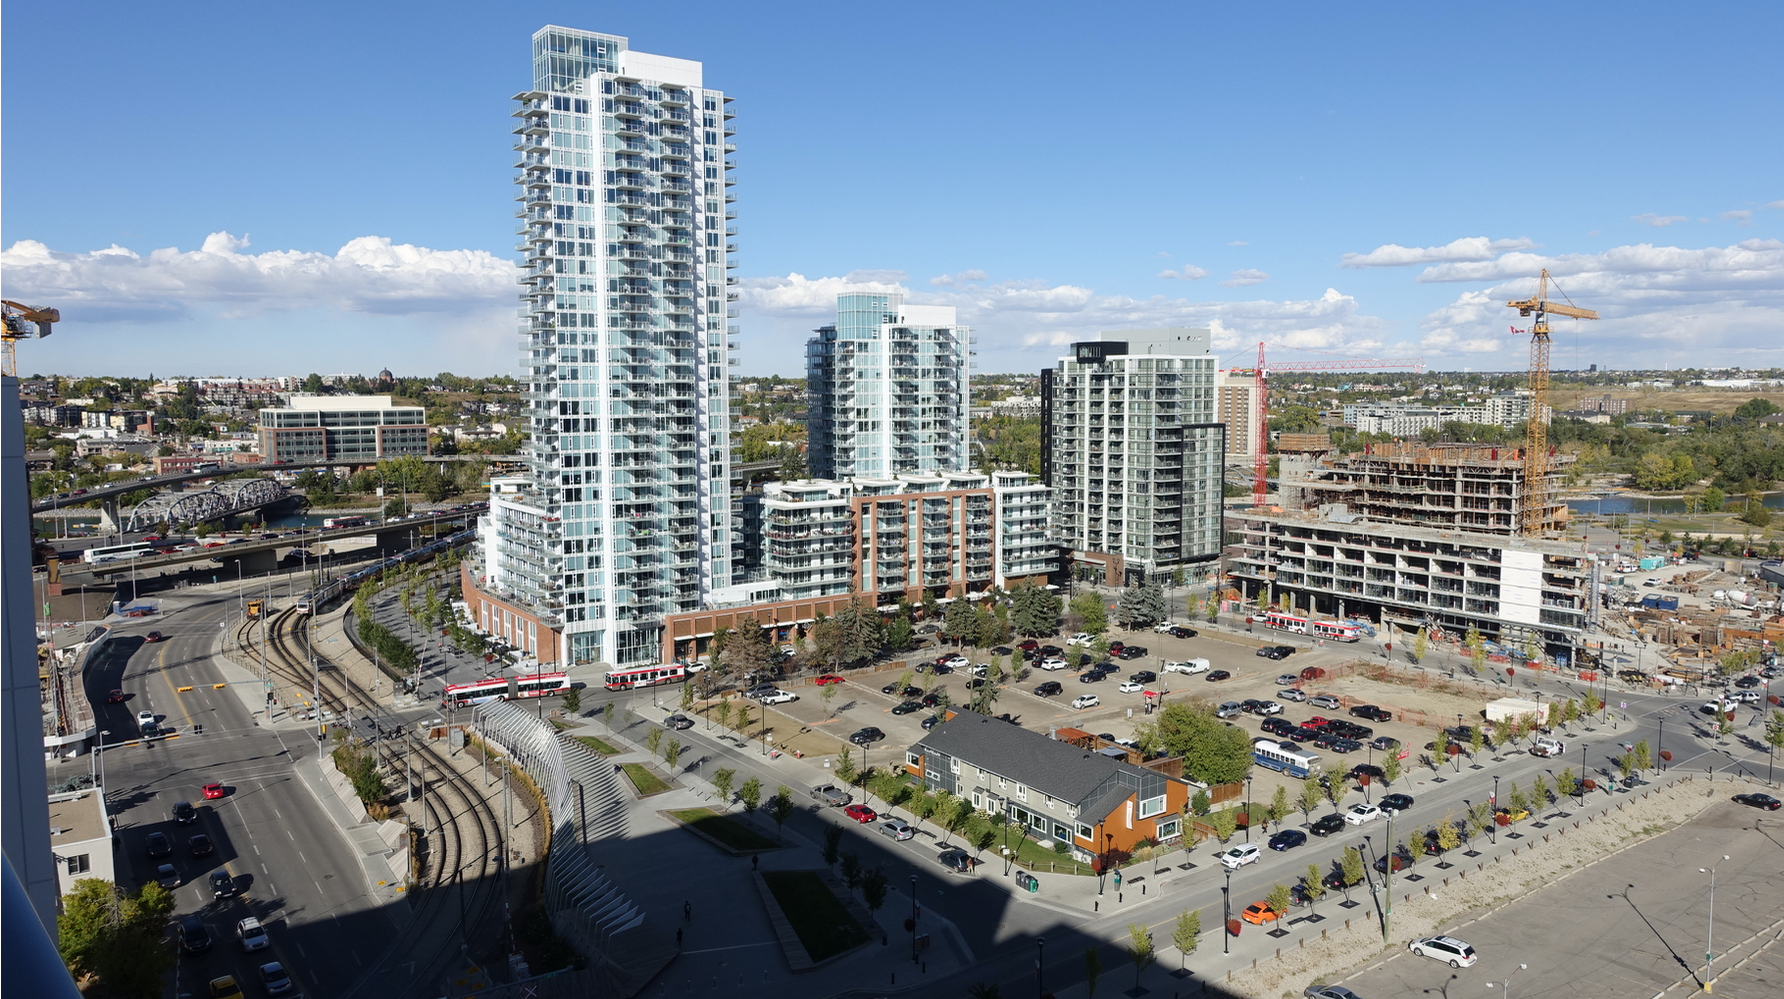 Calgary's East Village is a multi-billion dollar development that will eventually be home to 12,000 residents immediately east of the downtown core.